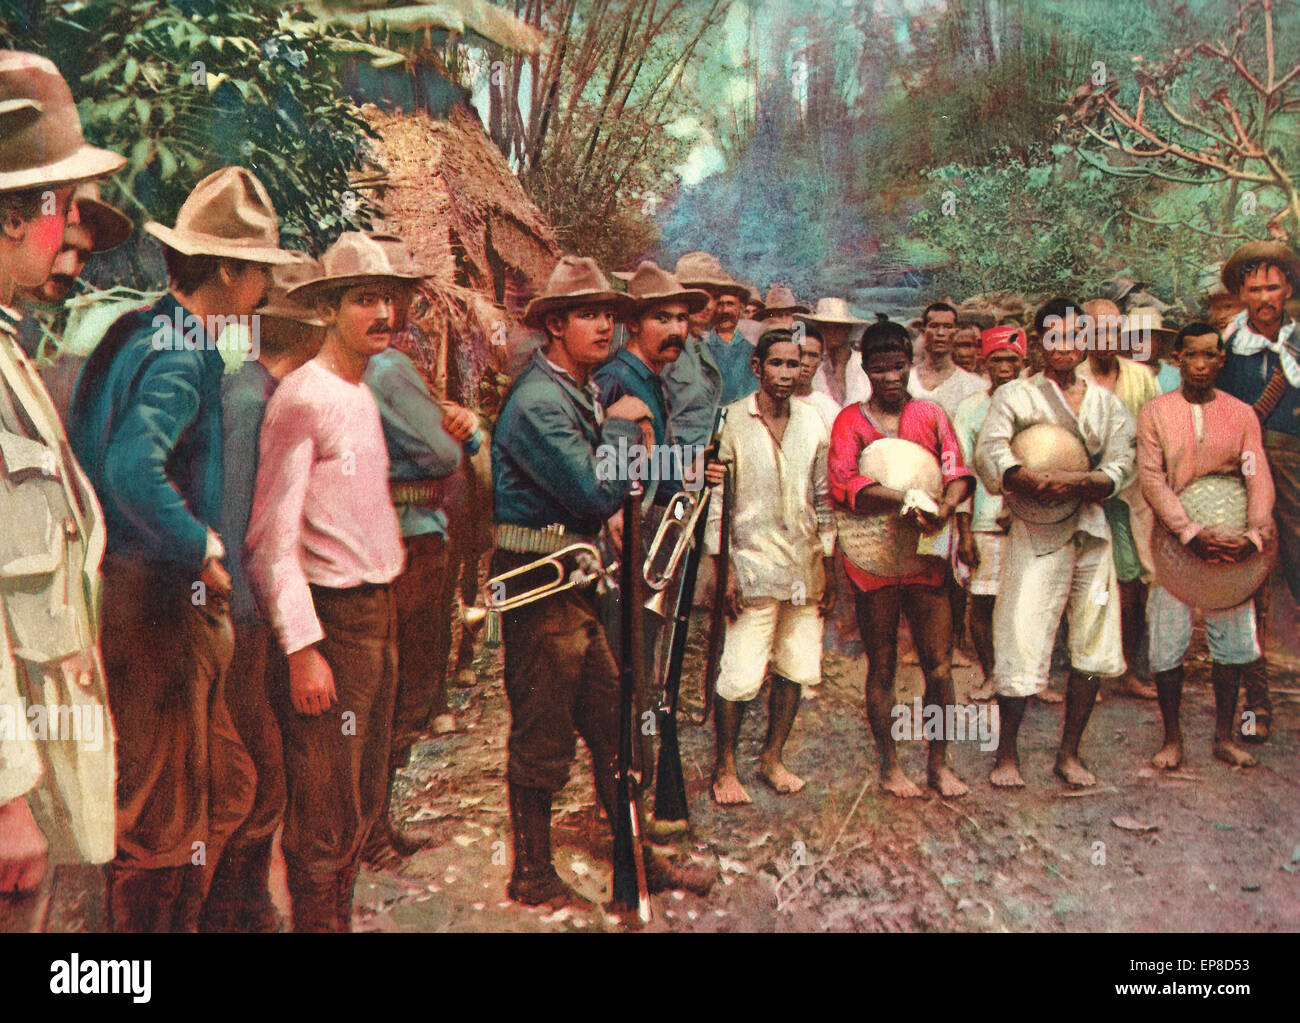 Prisoners captured near Pasig City, March 15, 1899 during the Philippine American War - Stock Image